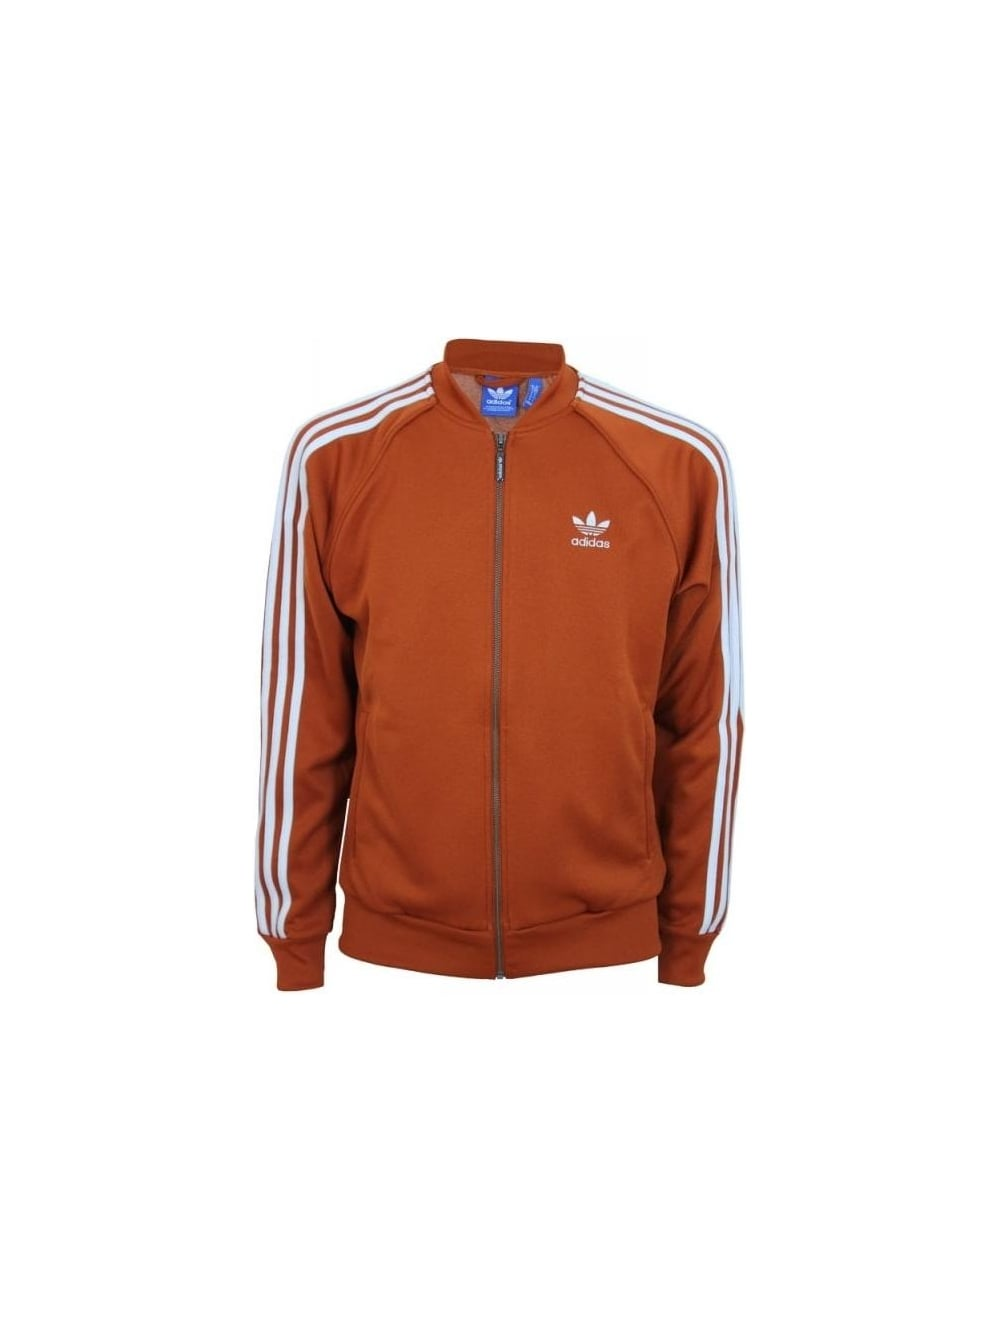 on sale 8a6eb 9d96d Superstar Track Top - Fox Red/White